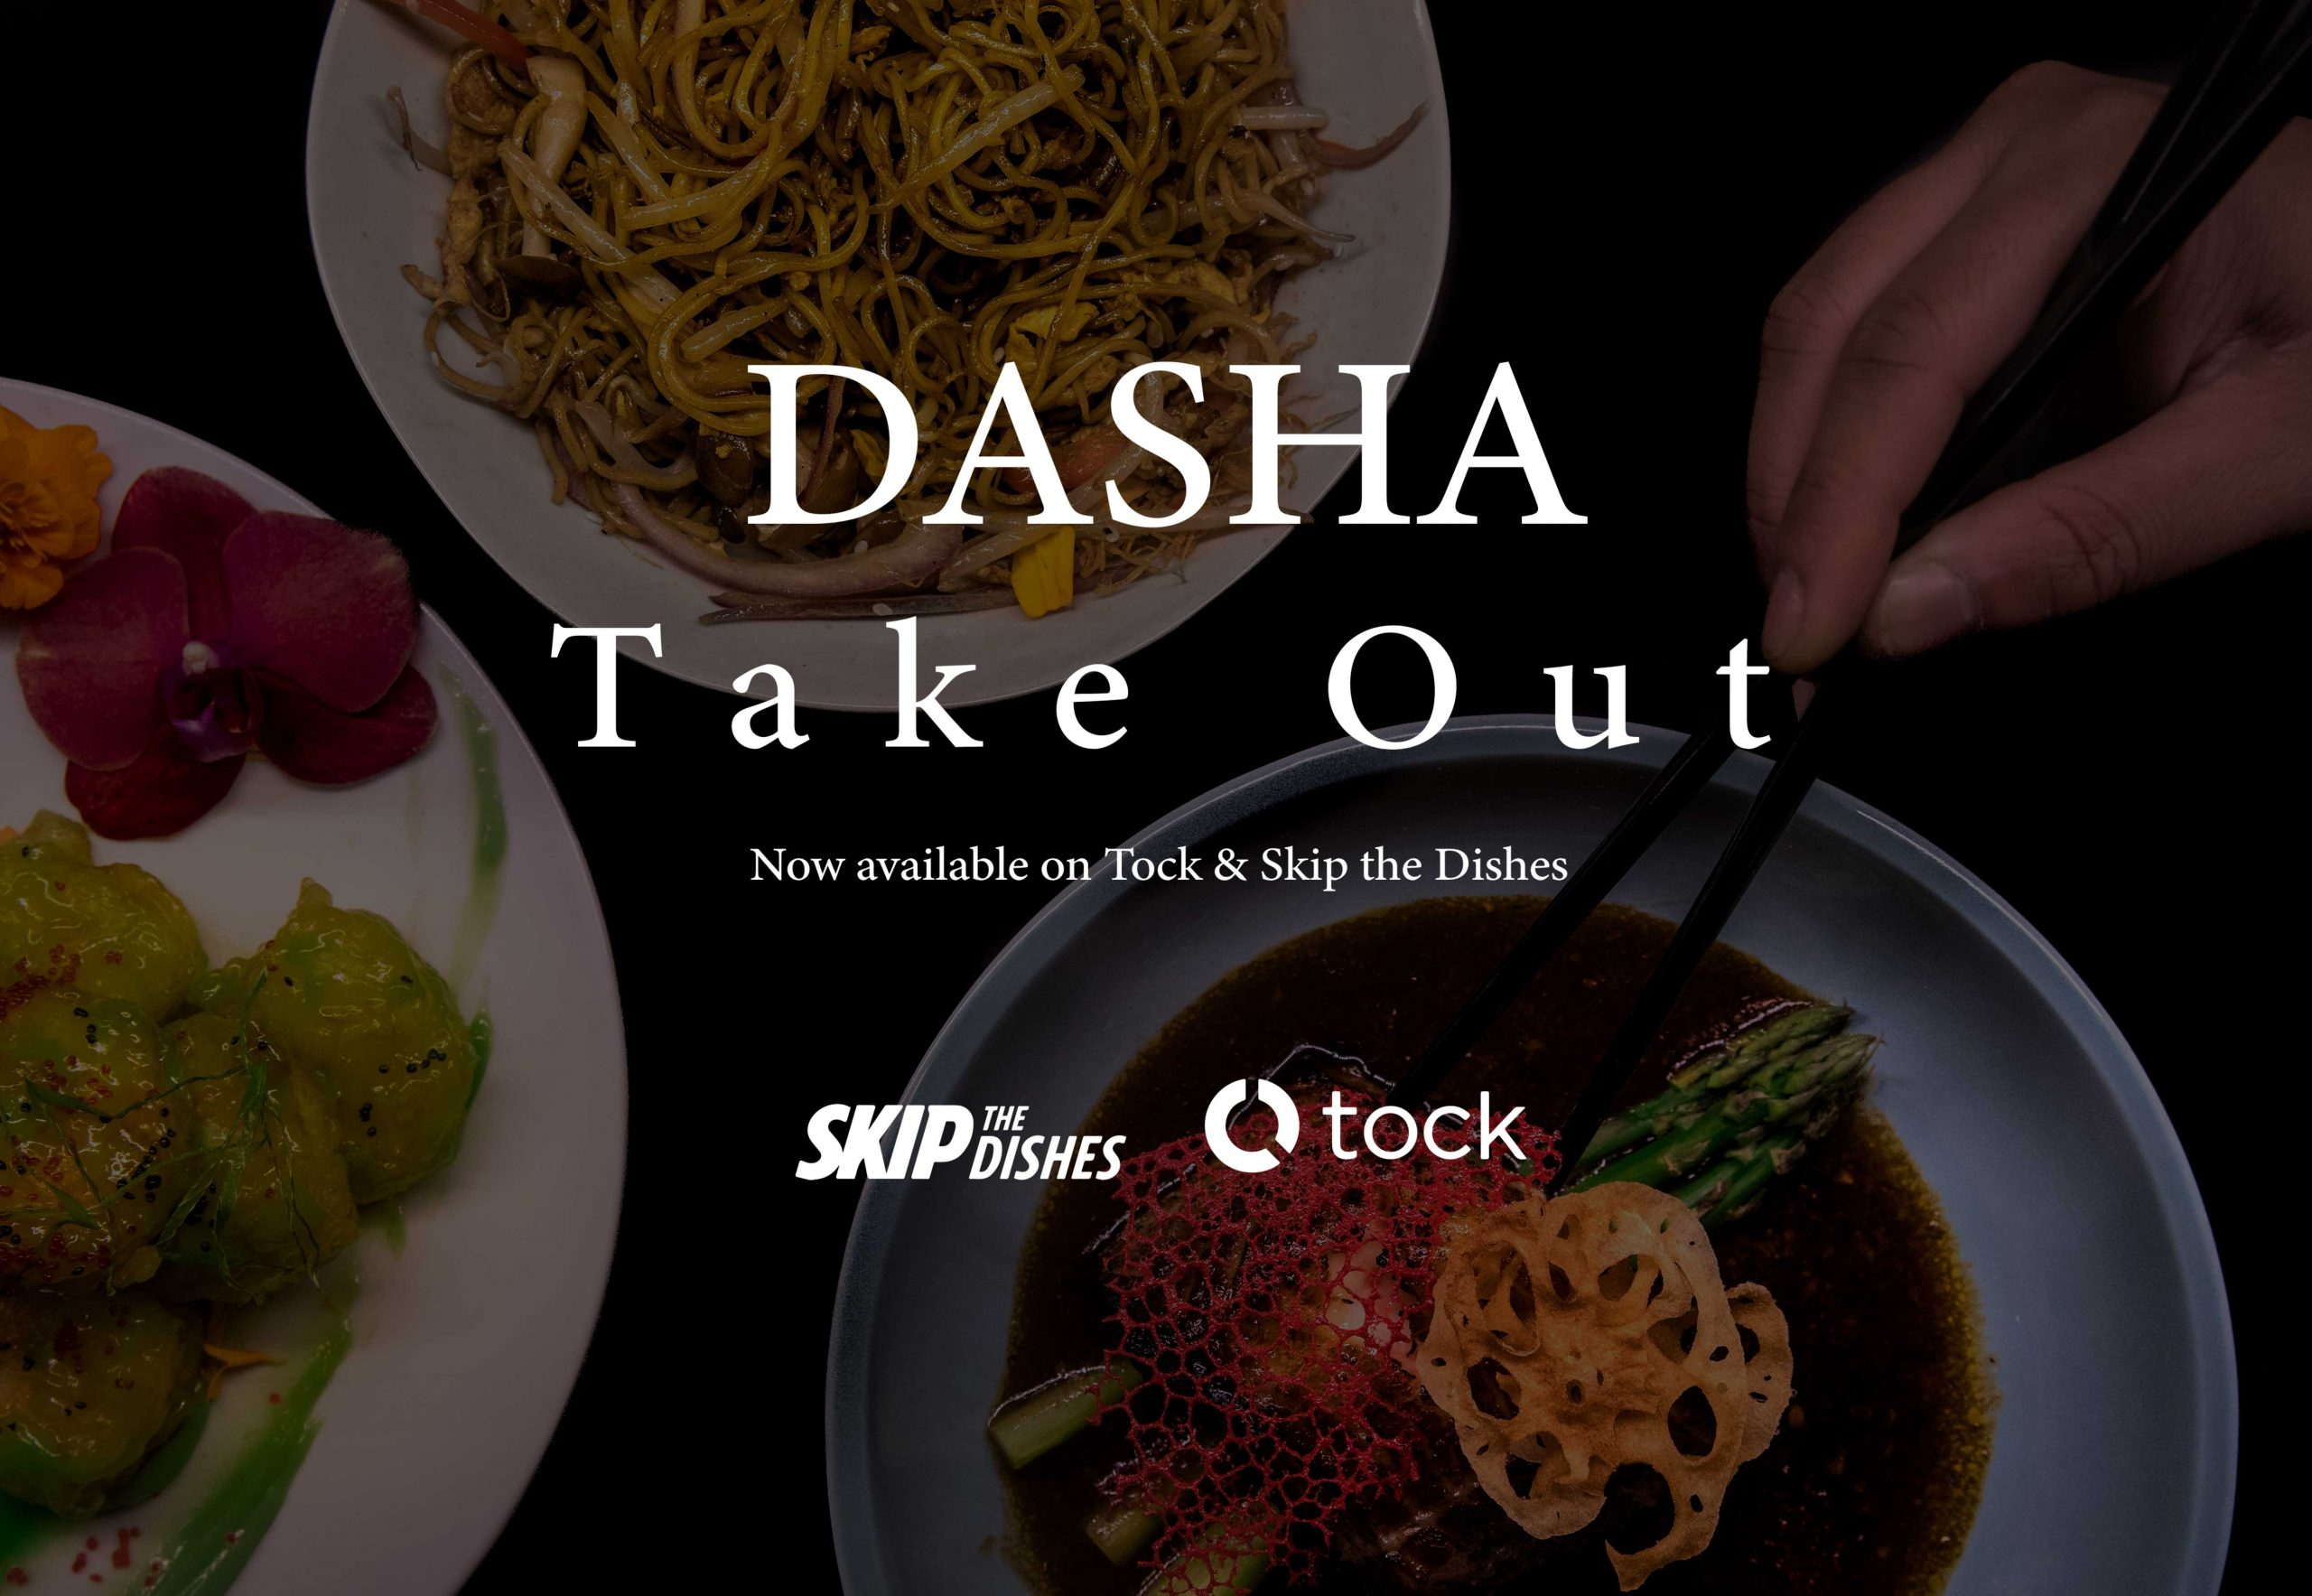 DASHA Take out